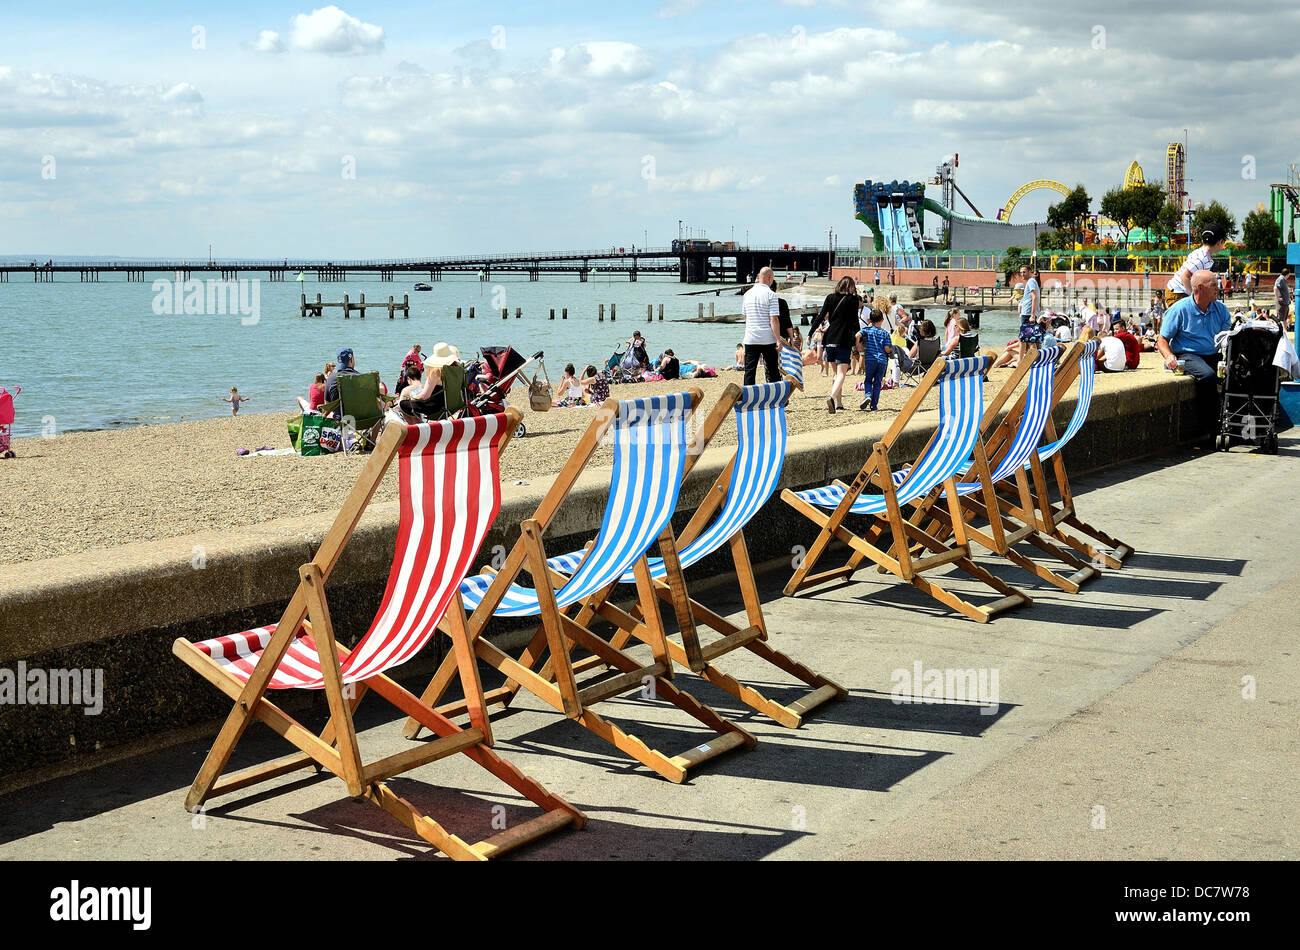 Busy seafront in summertime at Southend on Sea Essex UK - Stock Image